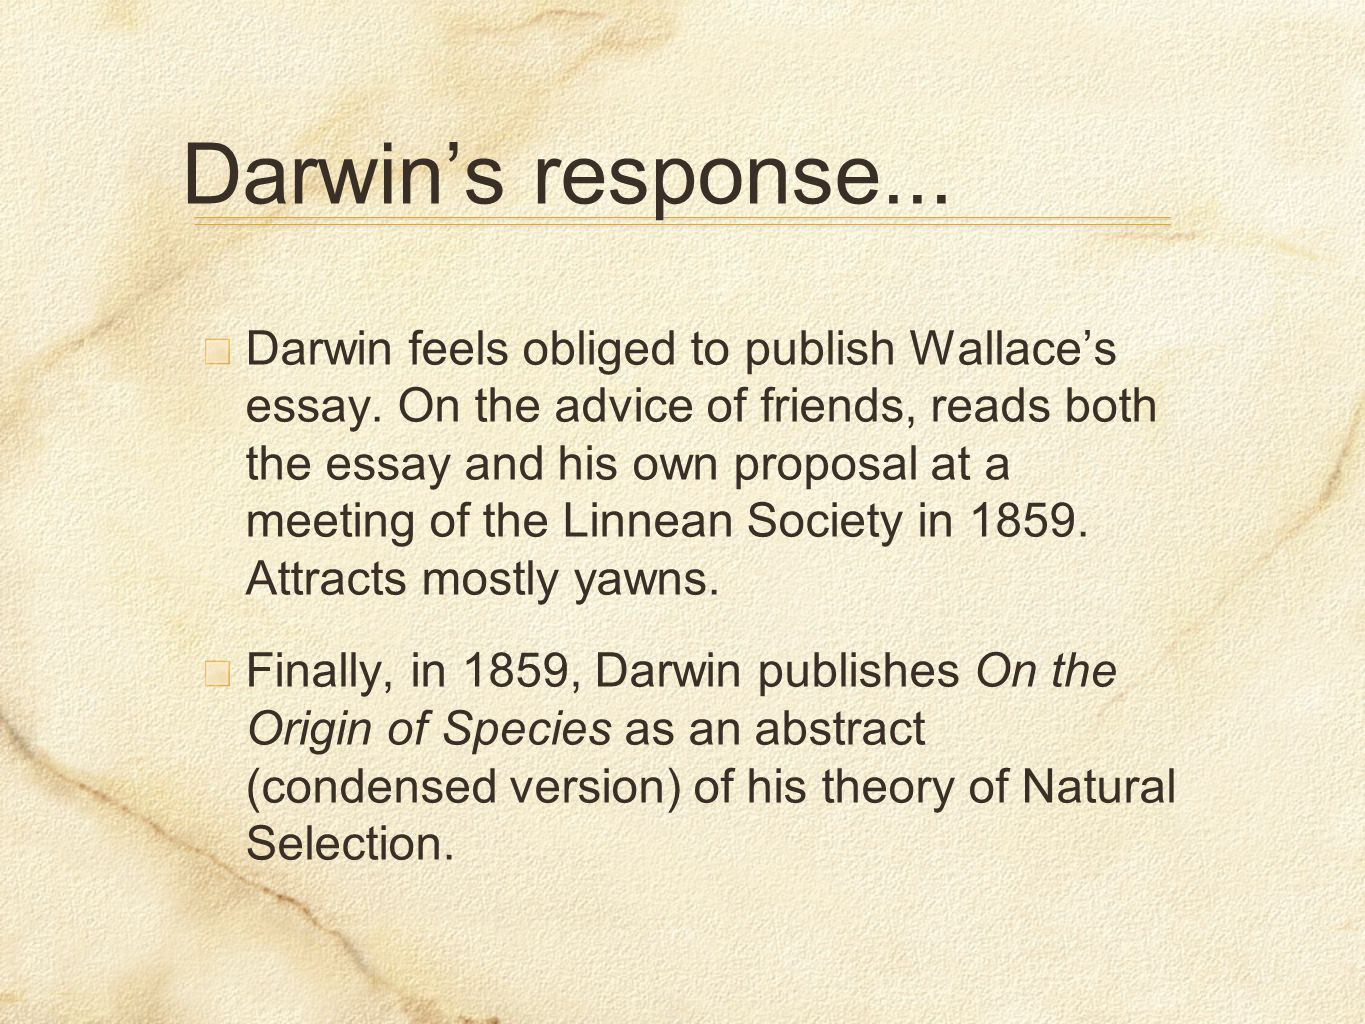 Darwin's response... Darwin feels obliged to publish Wallace's essay.